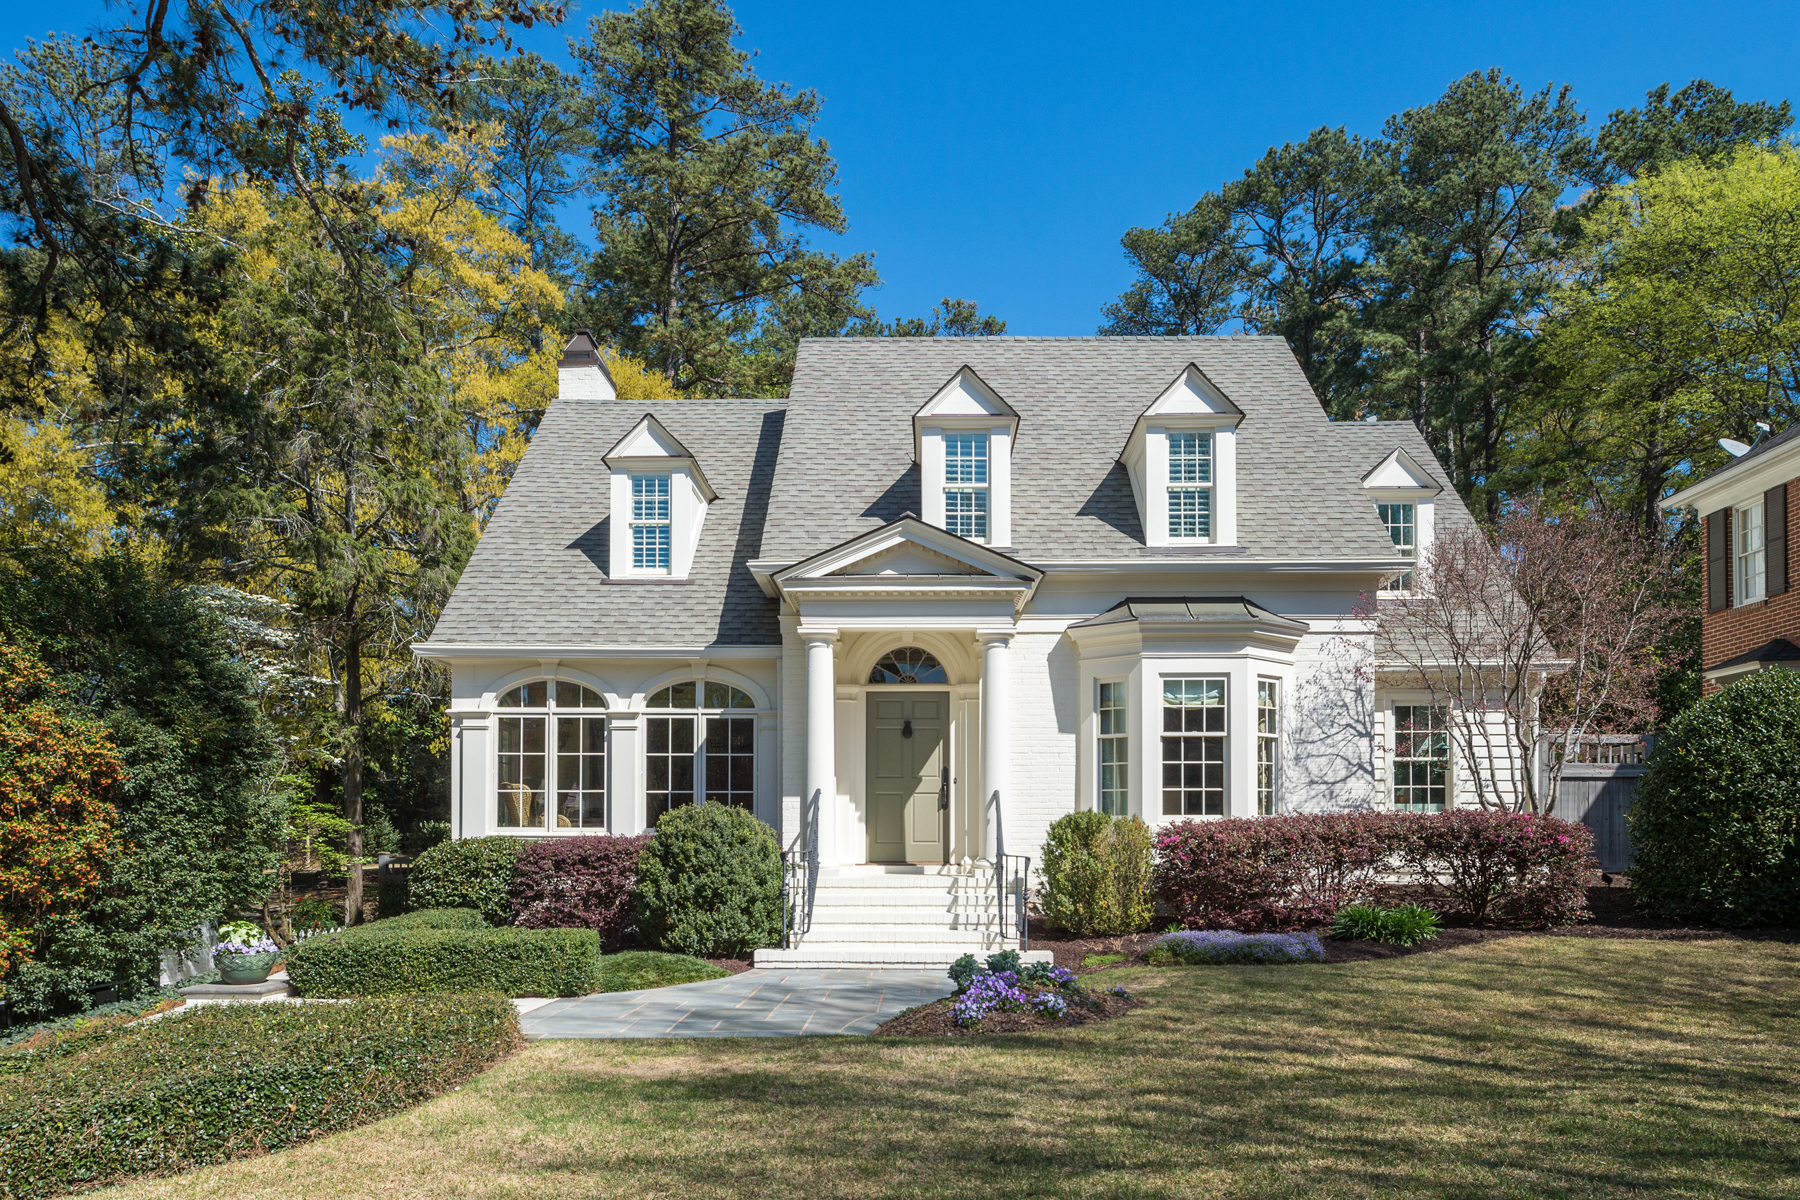 Single Family Home for Sale at Wonderful Home On Great Flat Lot On Quiet Street 1022 Eulalia Road Buckhead, Atlanta, Georgia, 30319 United States